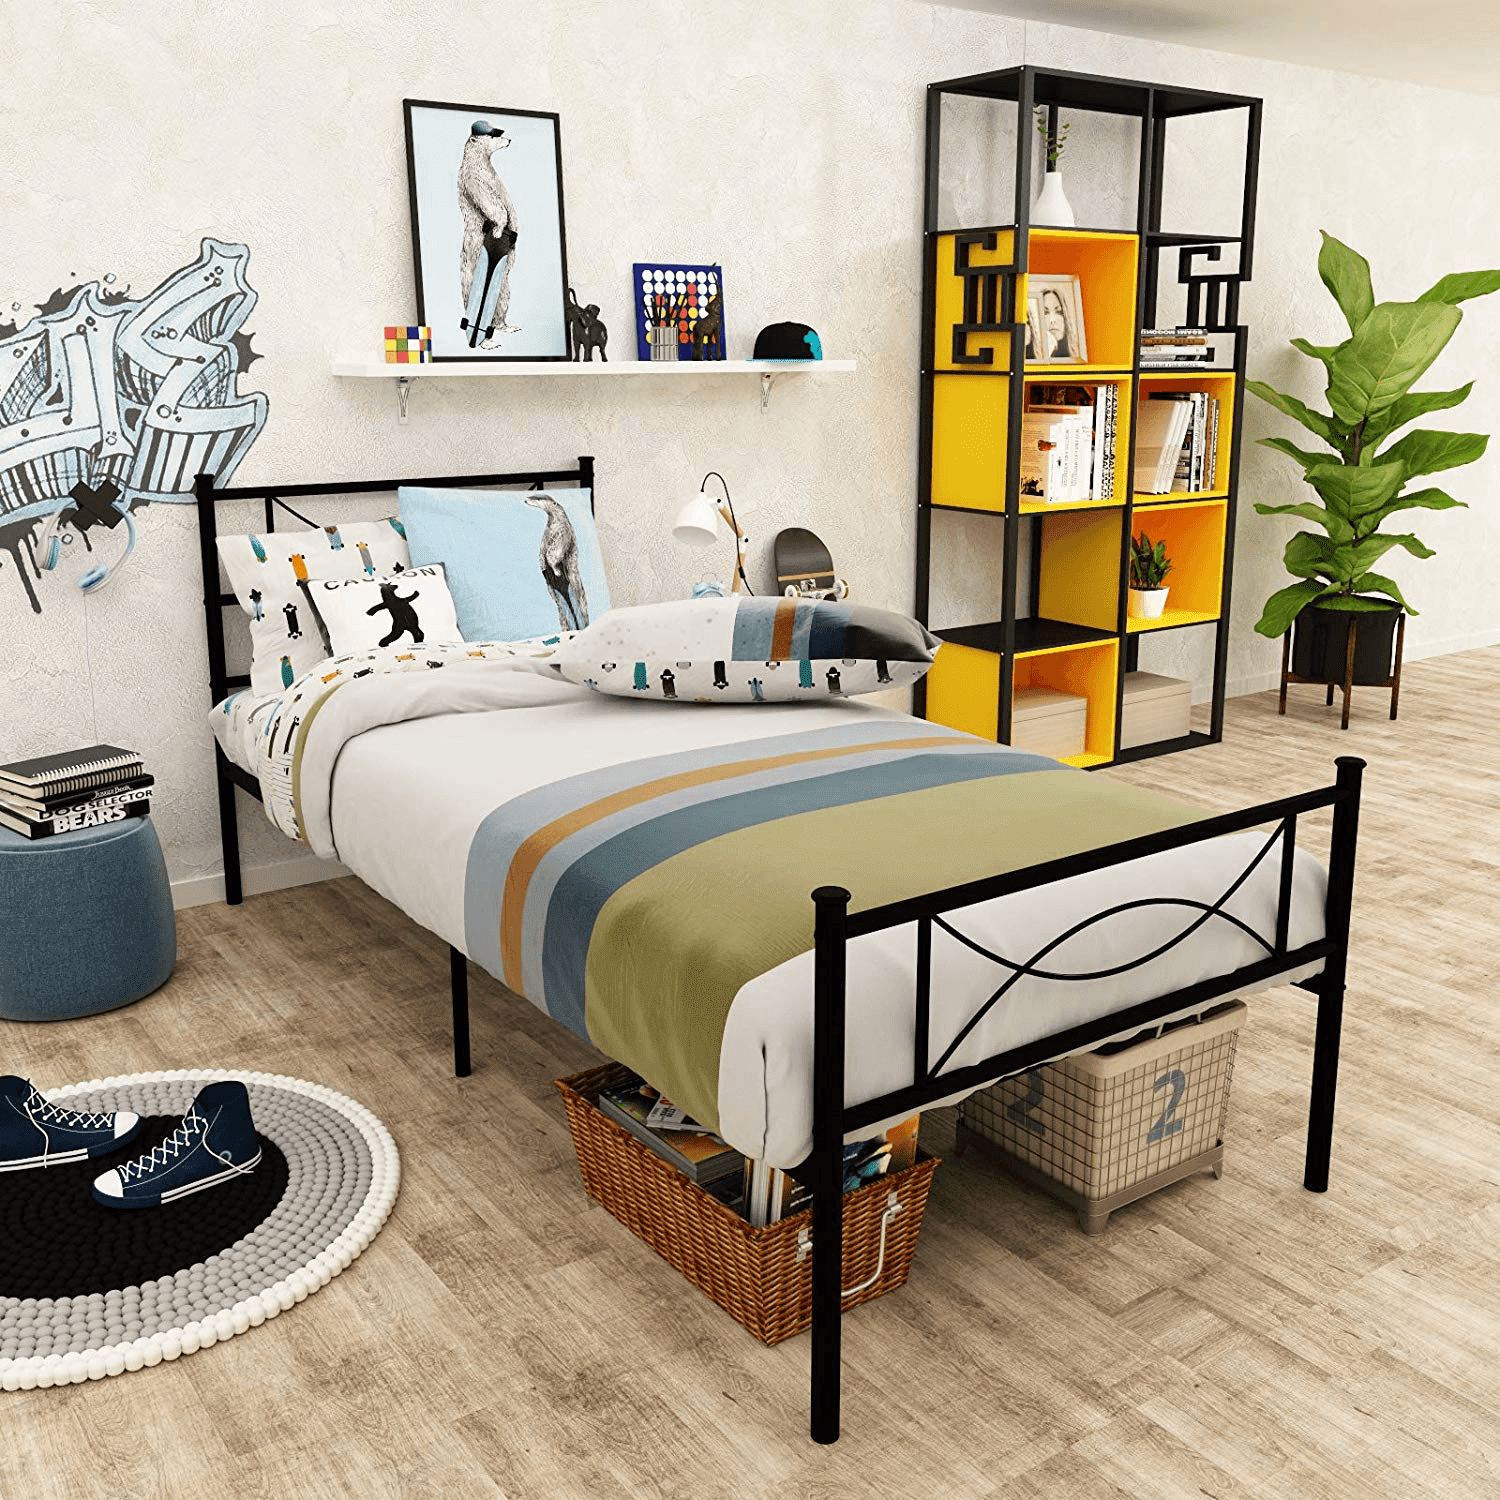 Image of: Elephance Twin Size Metal Platform Bed With Bowknot Headboards Easy Assembly Walmart Com Walmart Com